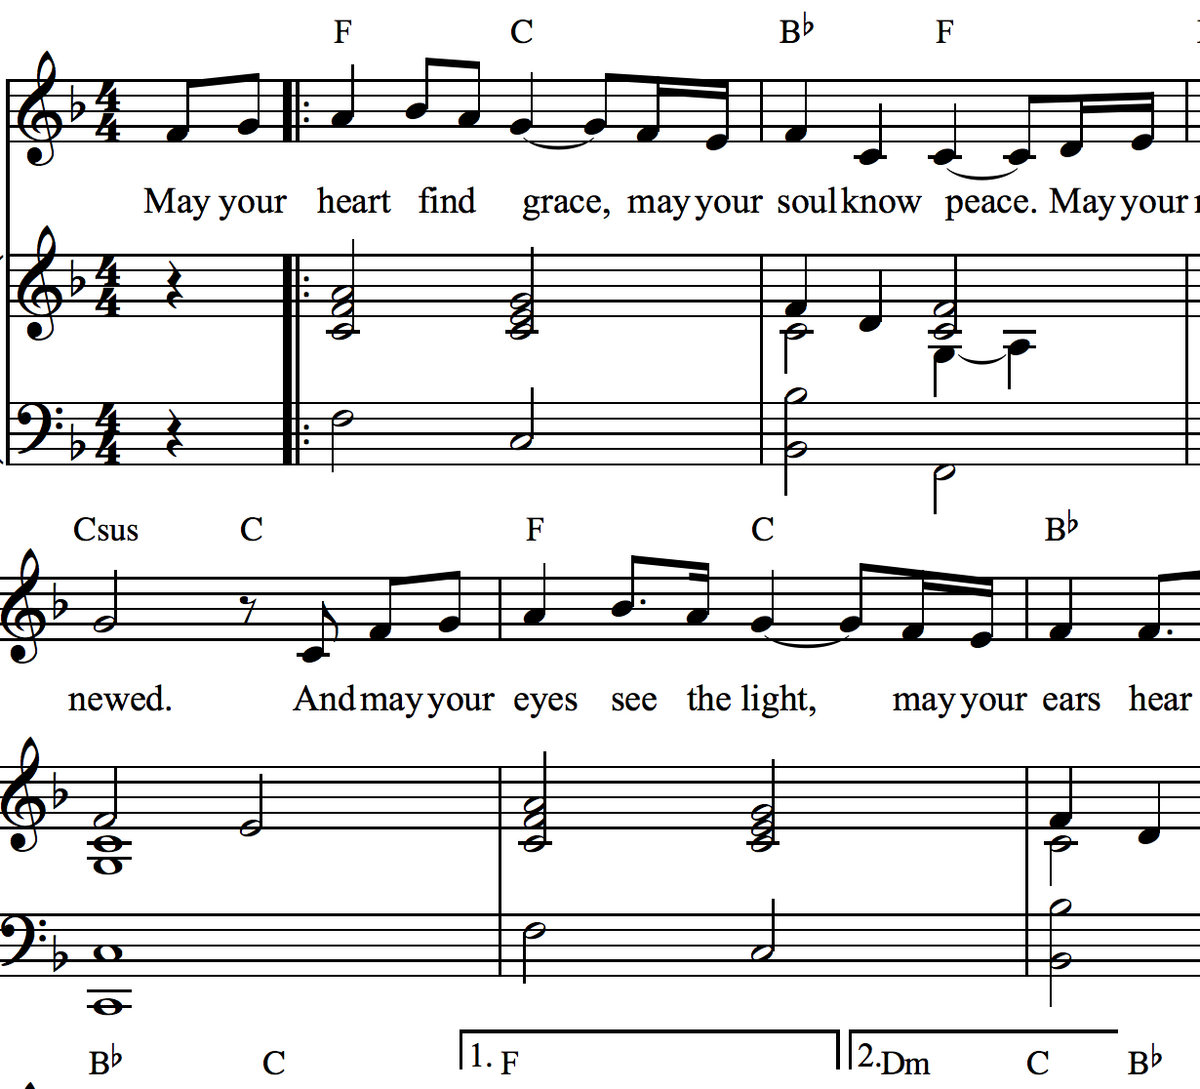 Christian Songs Sheet Music Pdf - abide with me fast falls the eventide hymnary in christ alone ...